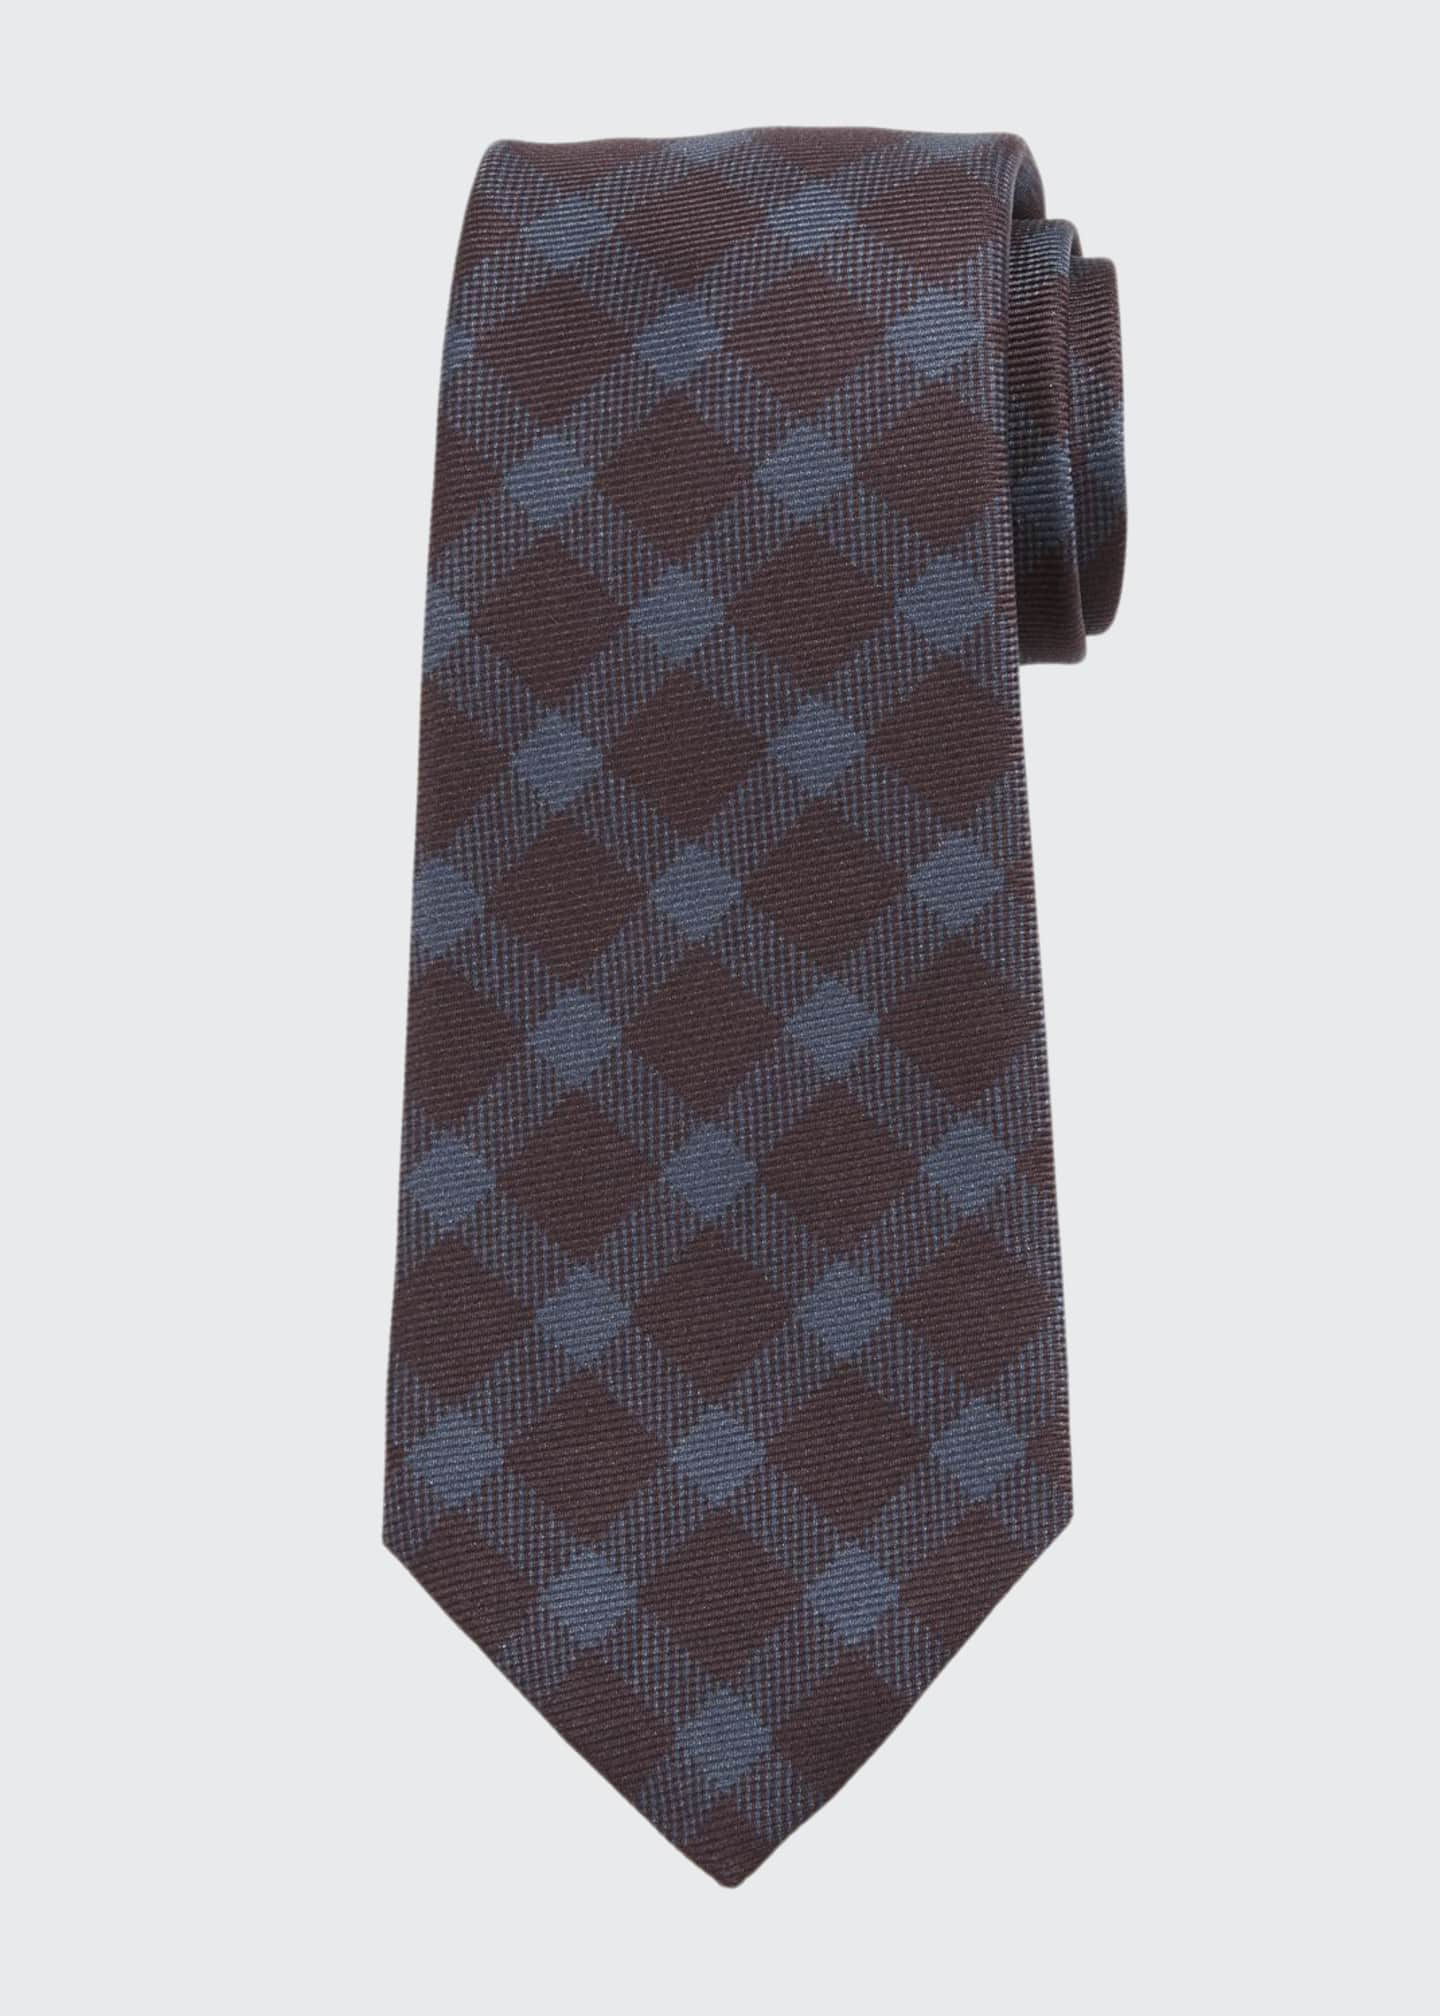 Kiton Men's Gingham Check Silk Tie